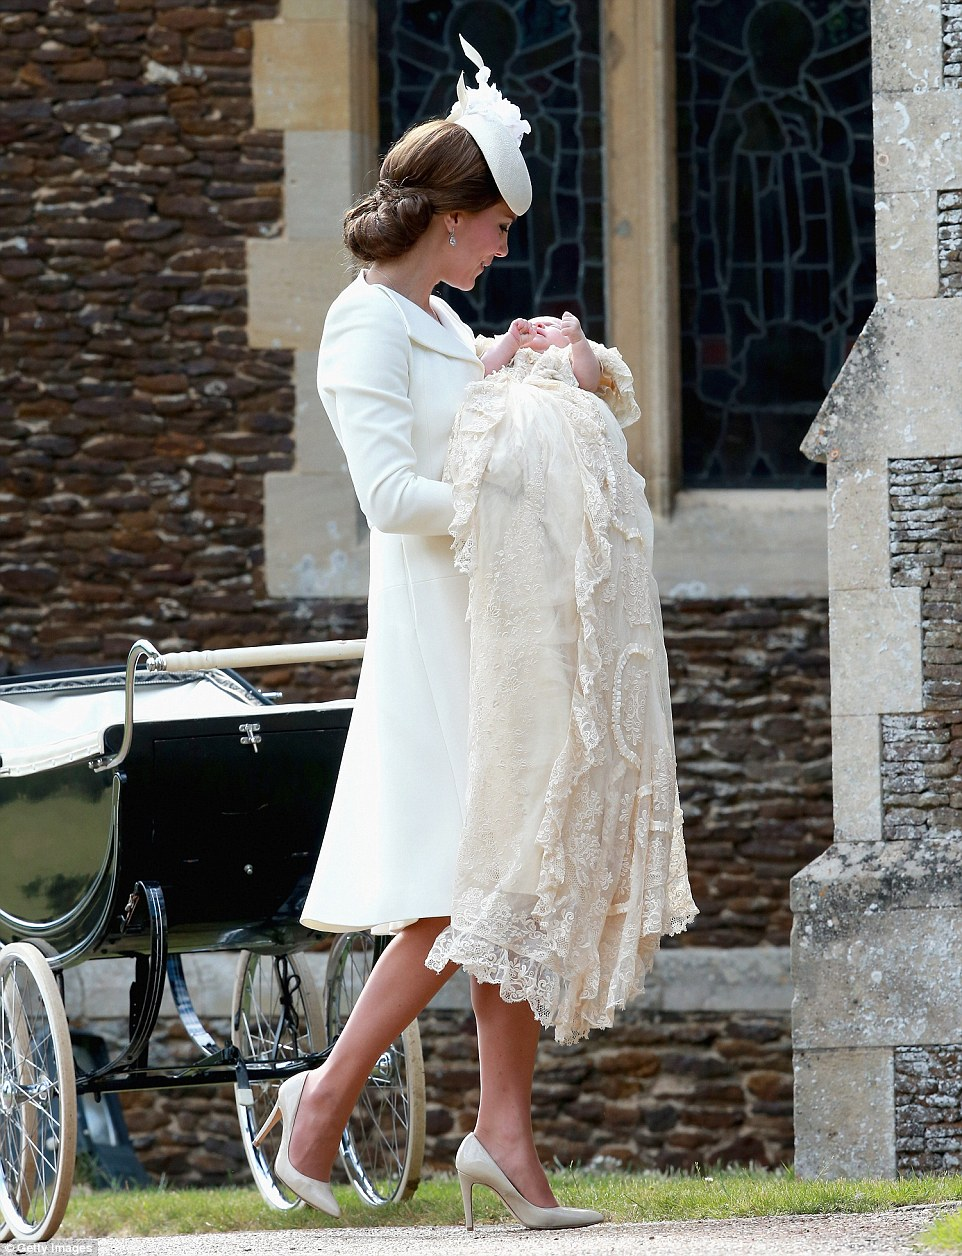 Kate holds Princess Charlotte in her arms as she takes the little girl, dressed in the traditional royal christening gown, into church